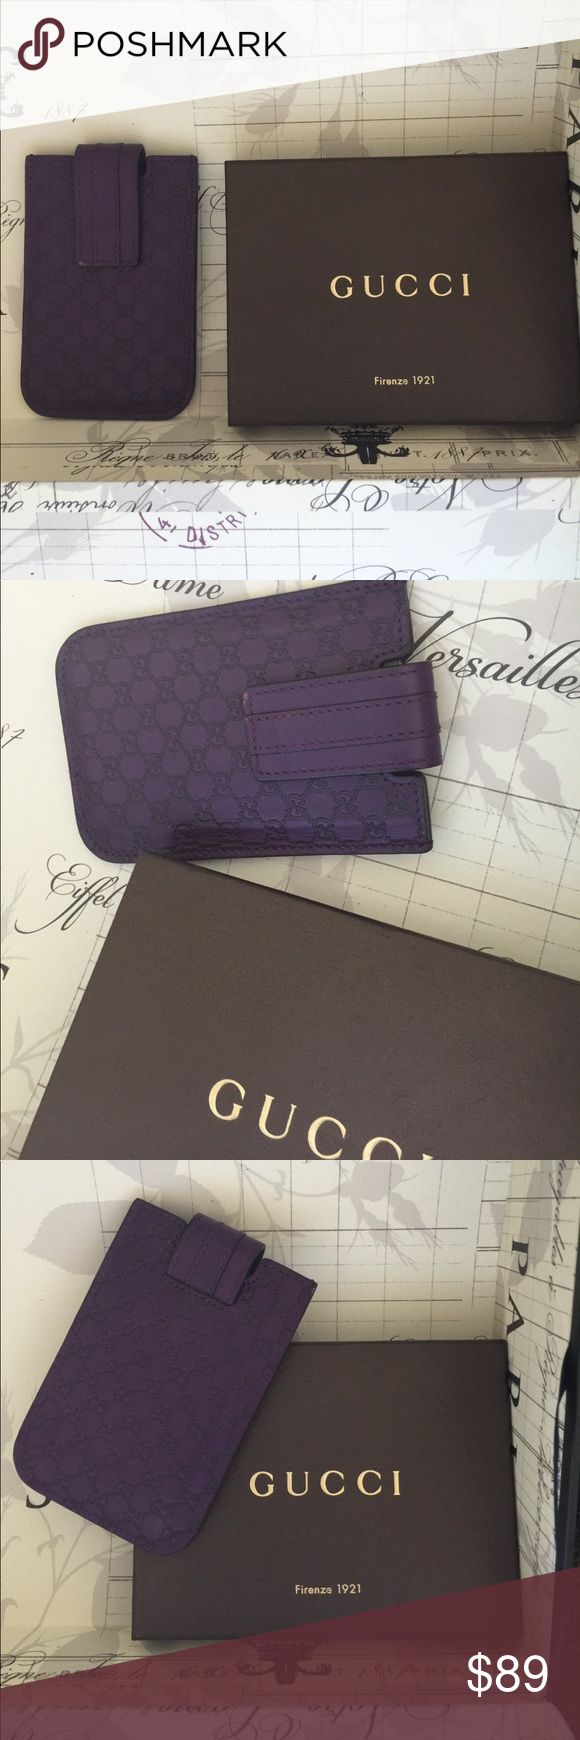 GUCCI iPhone 5 5/S Case GUCCI iPhone touch 4 4/S cases. Can be used as a business card holder, or other possibilities, it is very nice, just one area that has a minor rubbed spot.  PreOwned in Wonderful Condition  Leather Made in Italy 100% authentic purchased at the Gucci store in NY  5 inch by 3.25 inch or 12.7 cm by 8.2 cm  Purple with DOUBLE GG LOGO   Please see photos for additional details. Thanks and Happy Shopping GUCCI Accessories Phone Cases